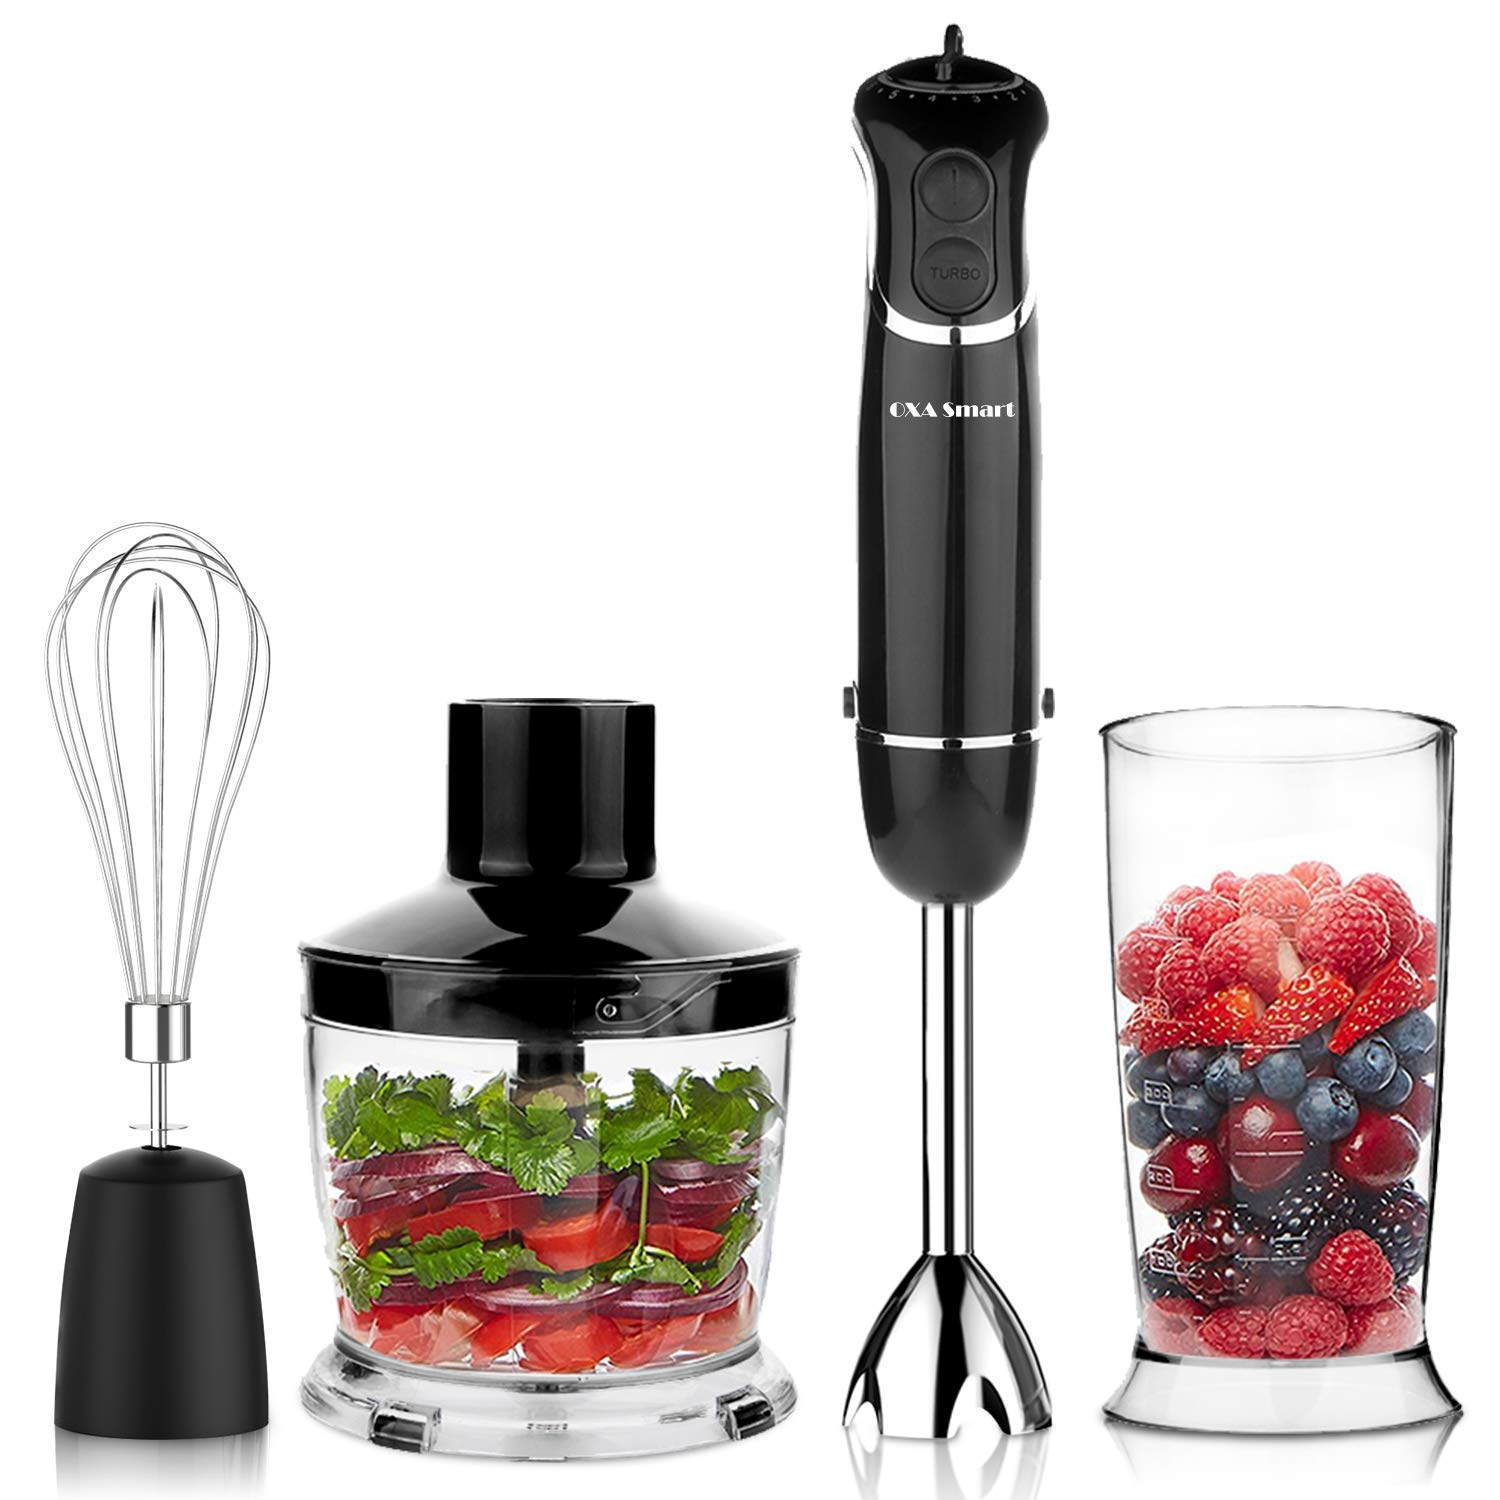 Oxa smart powerful 4-in-1 versatile blender